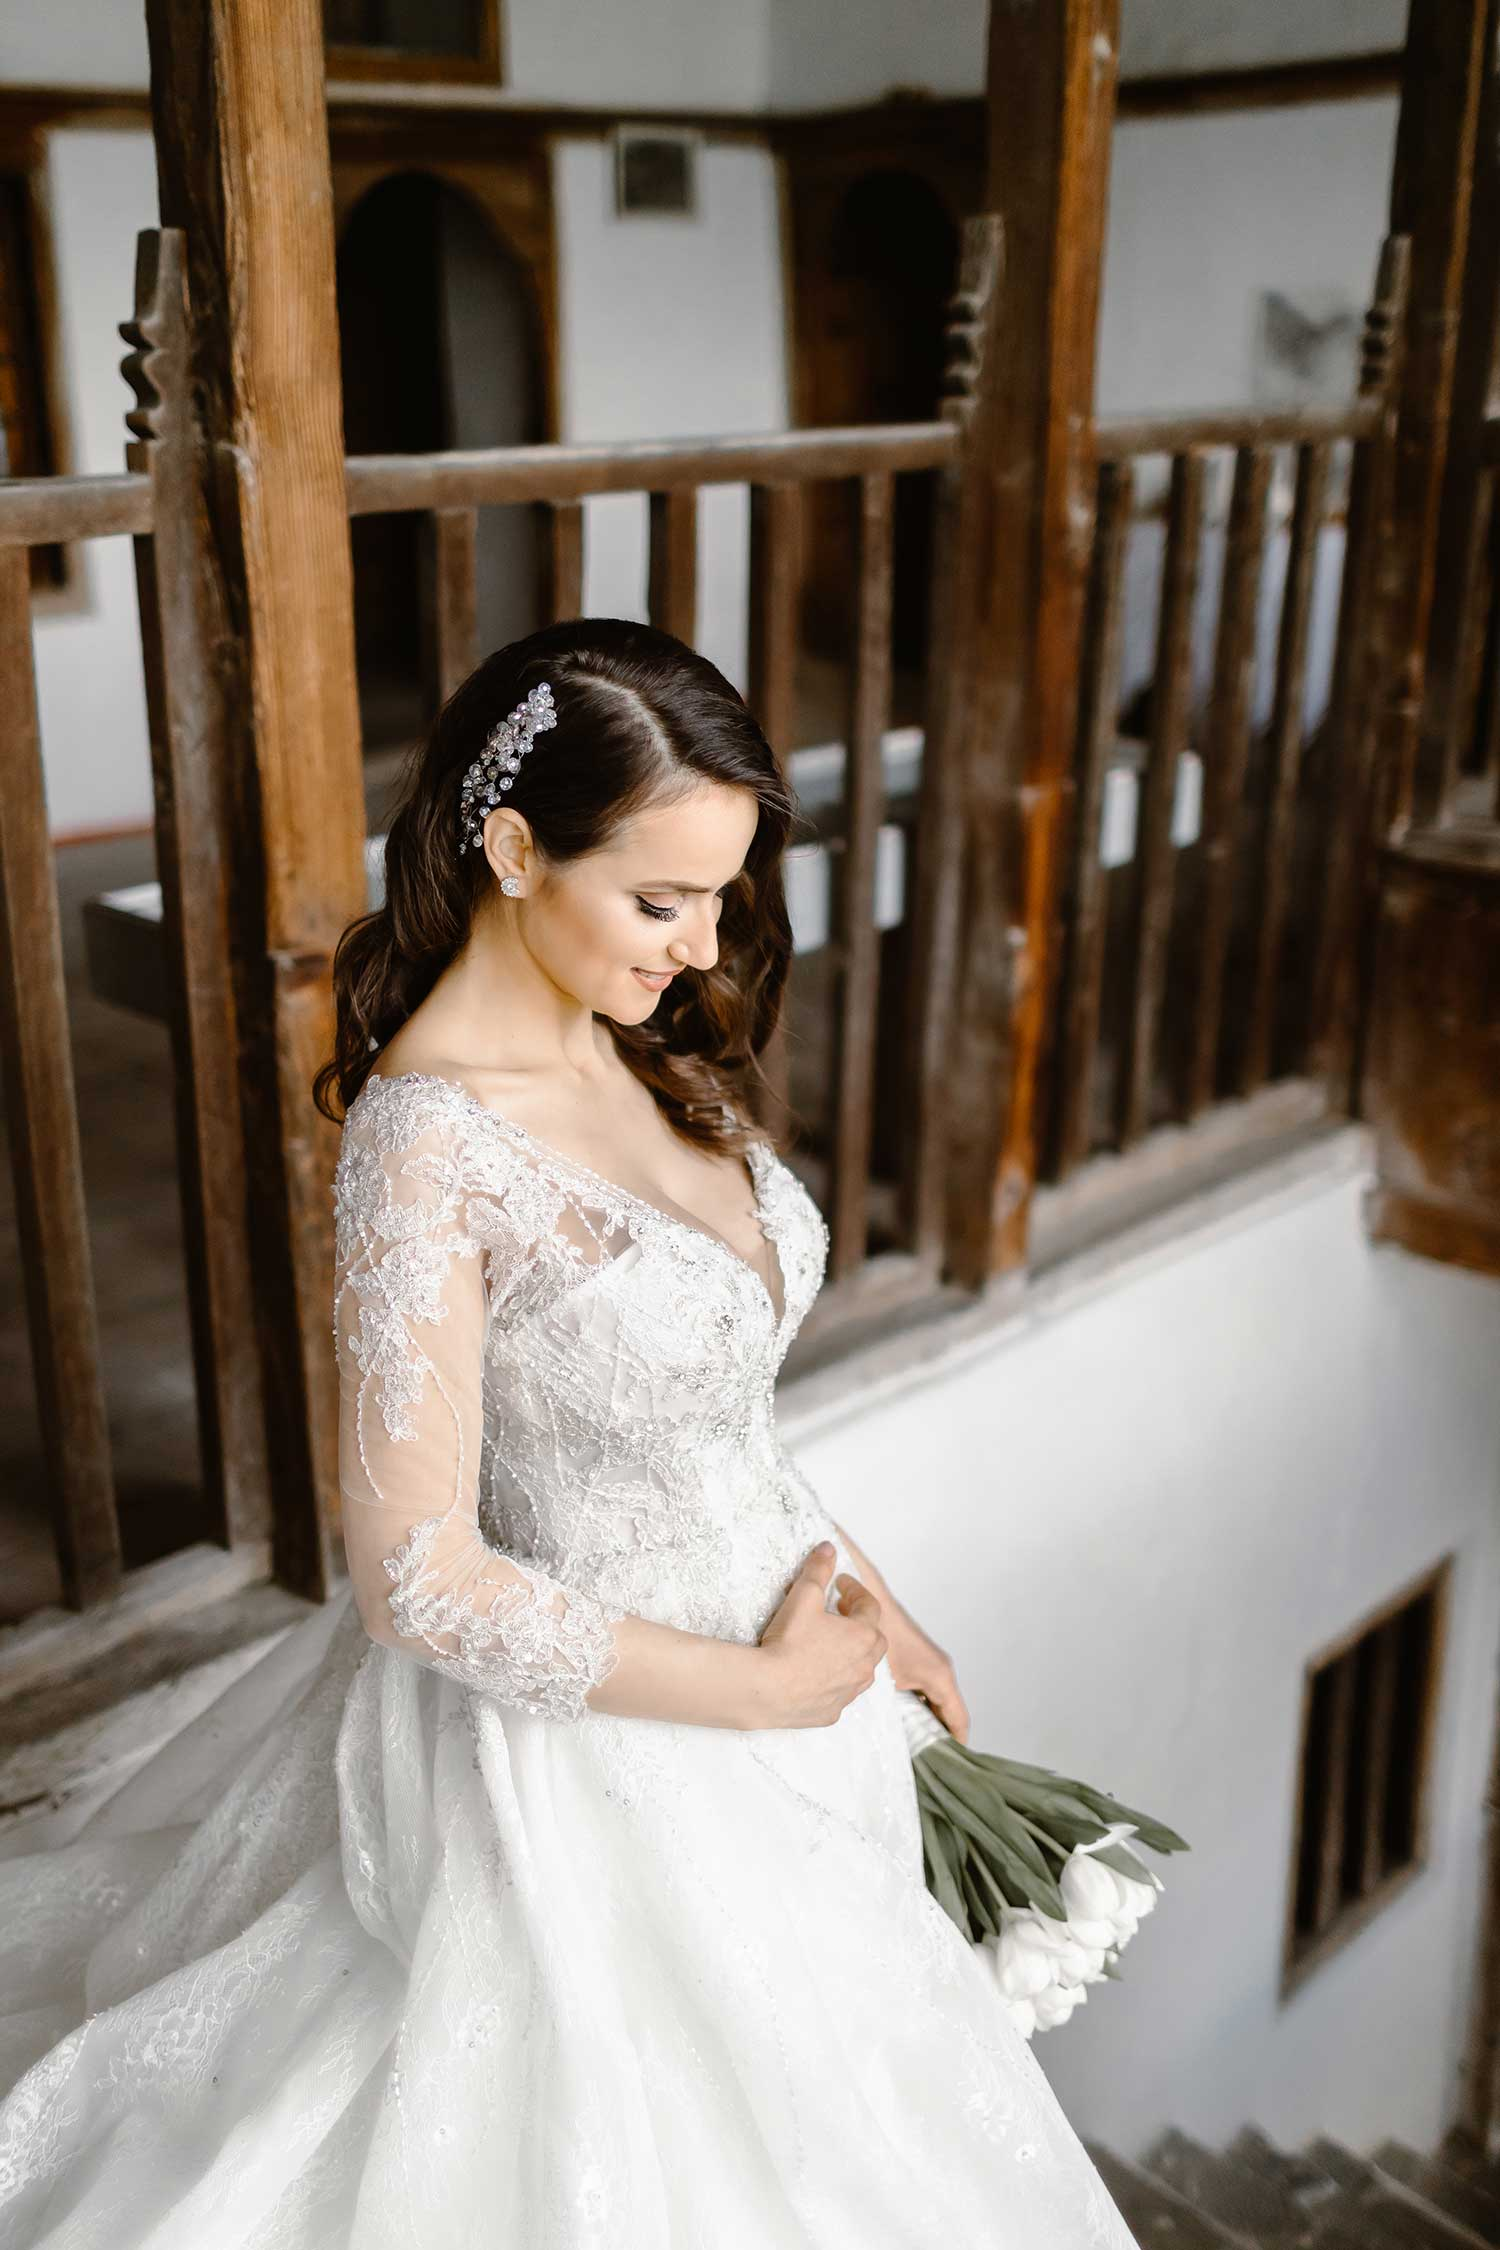 Beautiful bride posing in the stairs of the house